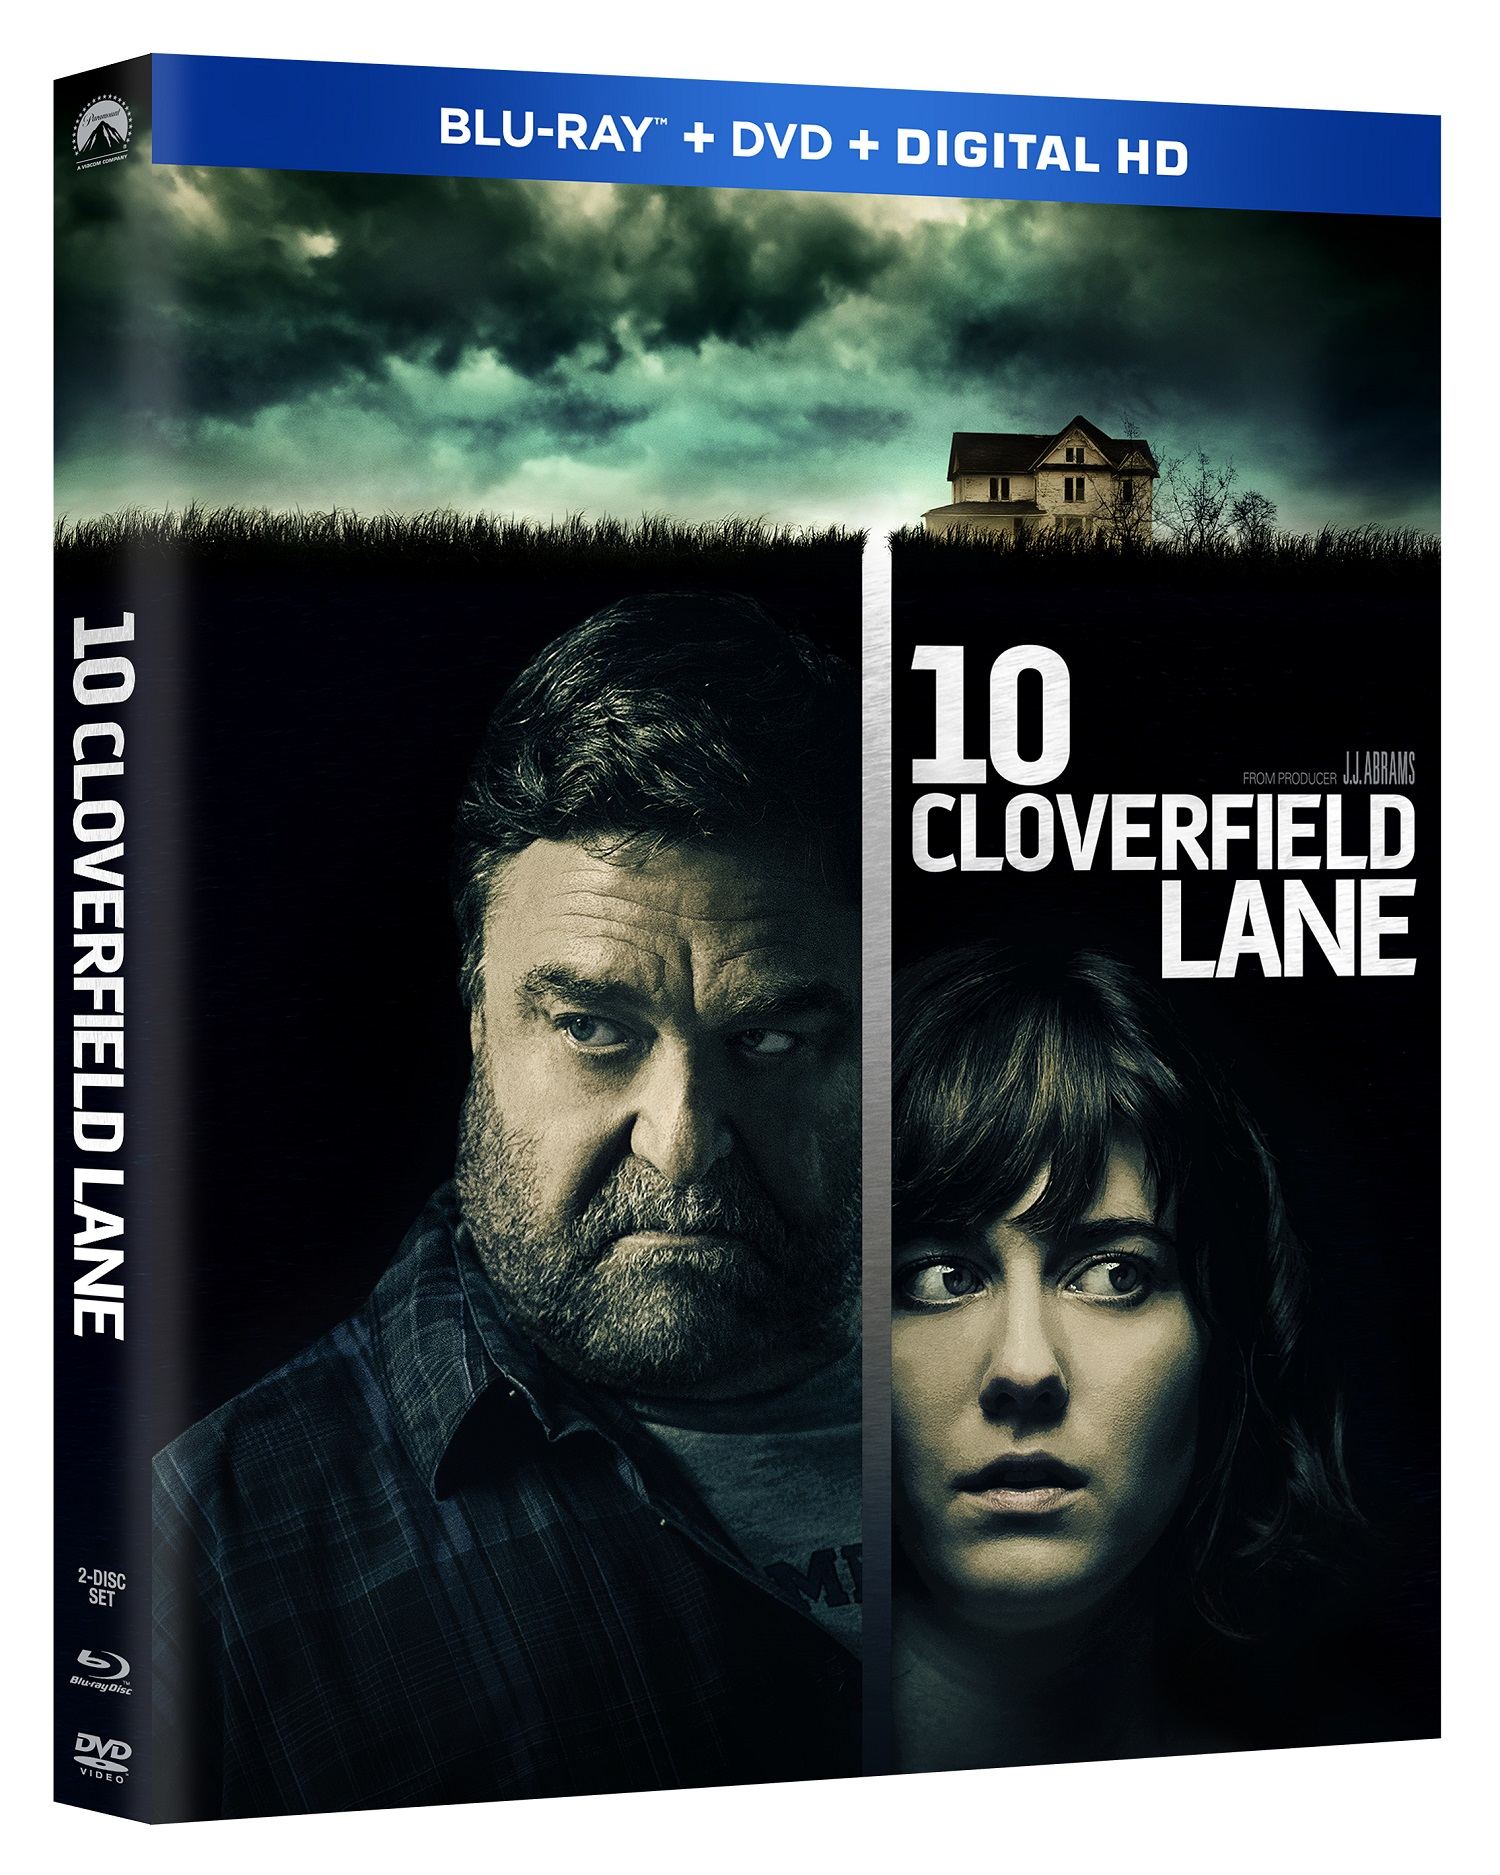 10 Cloverfield Lane, blu-ray contest